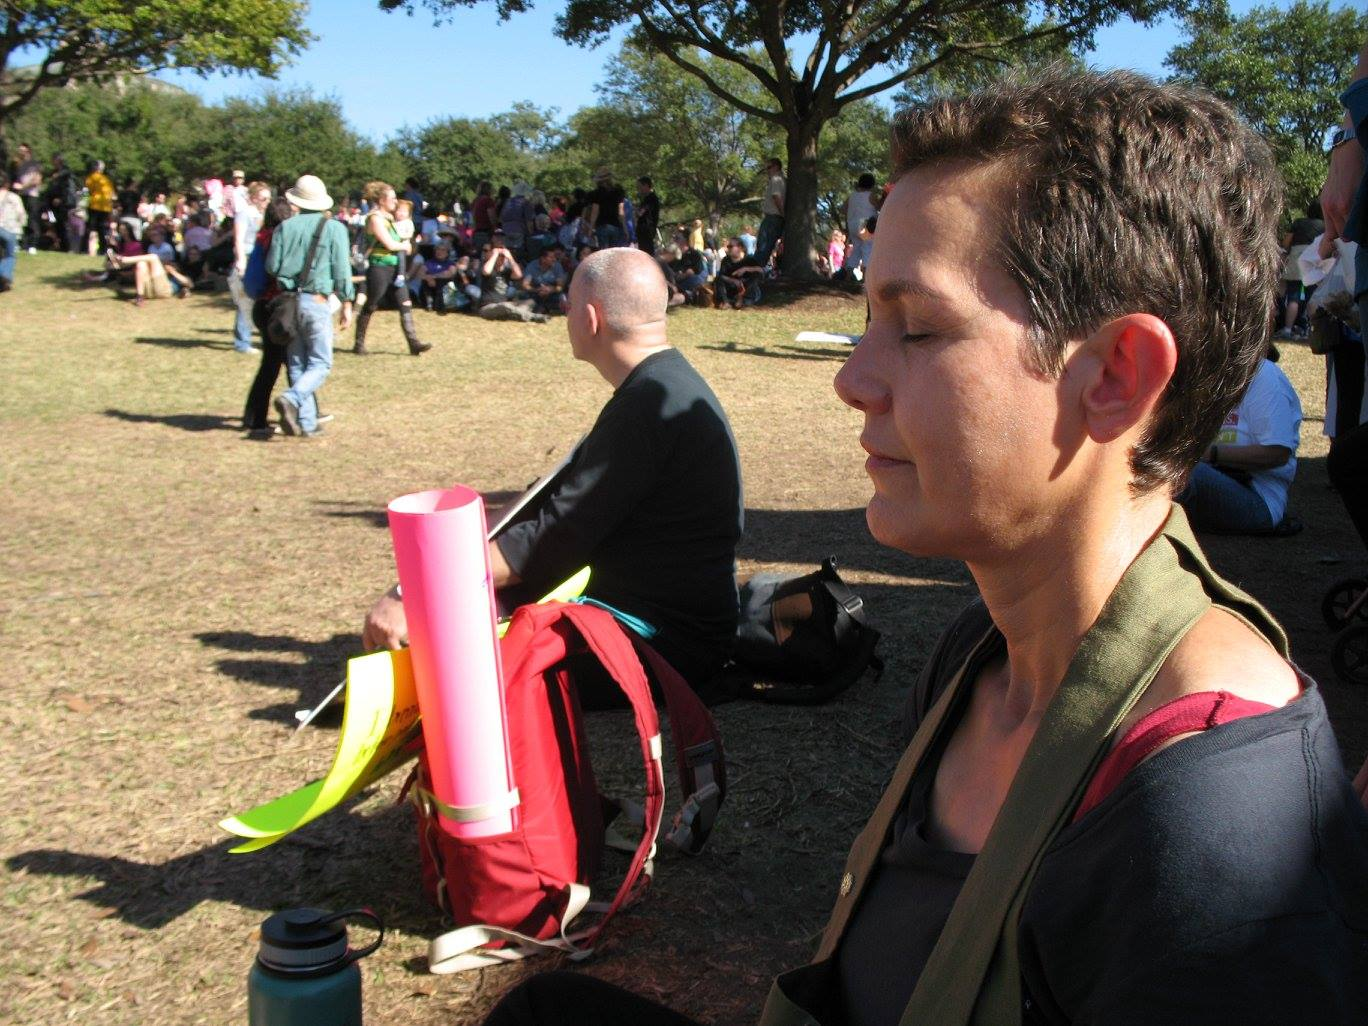 Mary Carol Edwards meditating at the Austin March